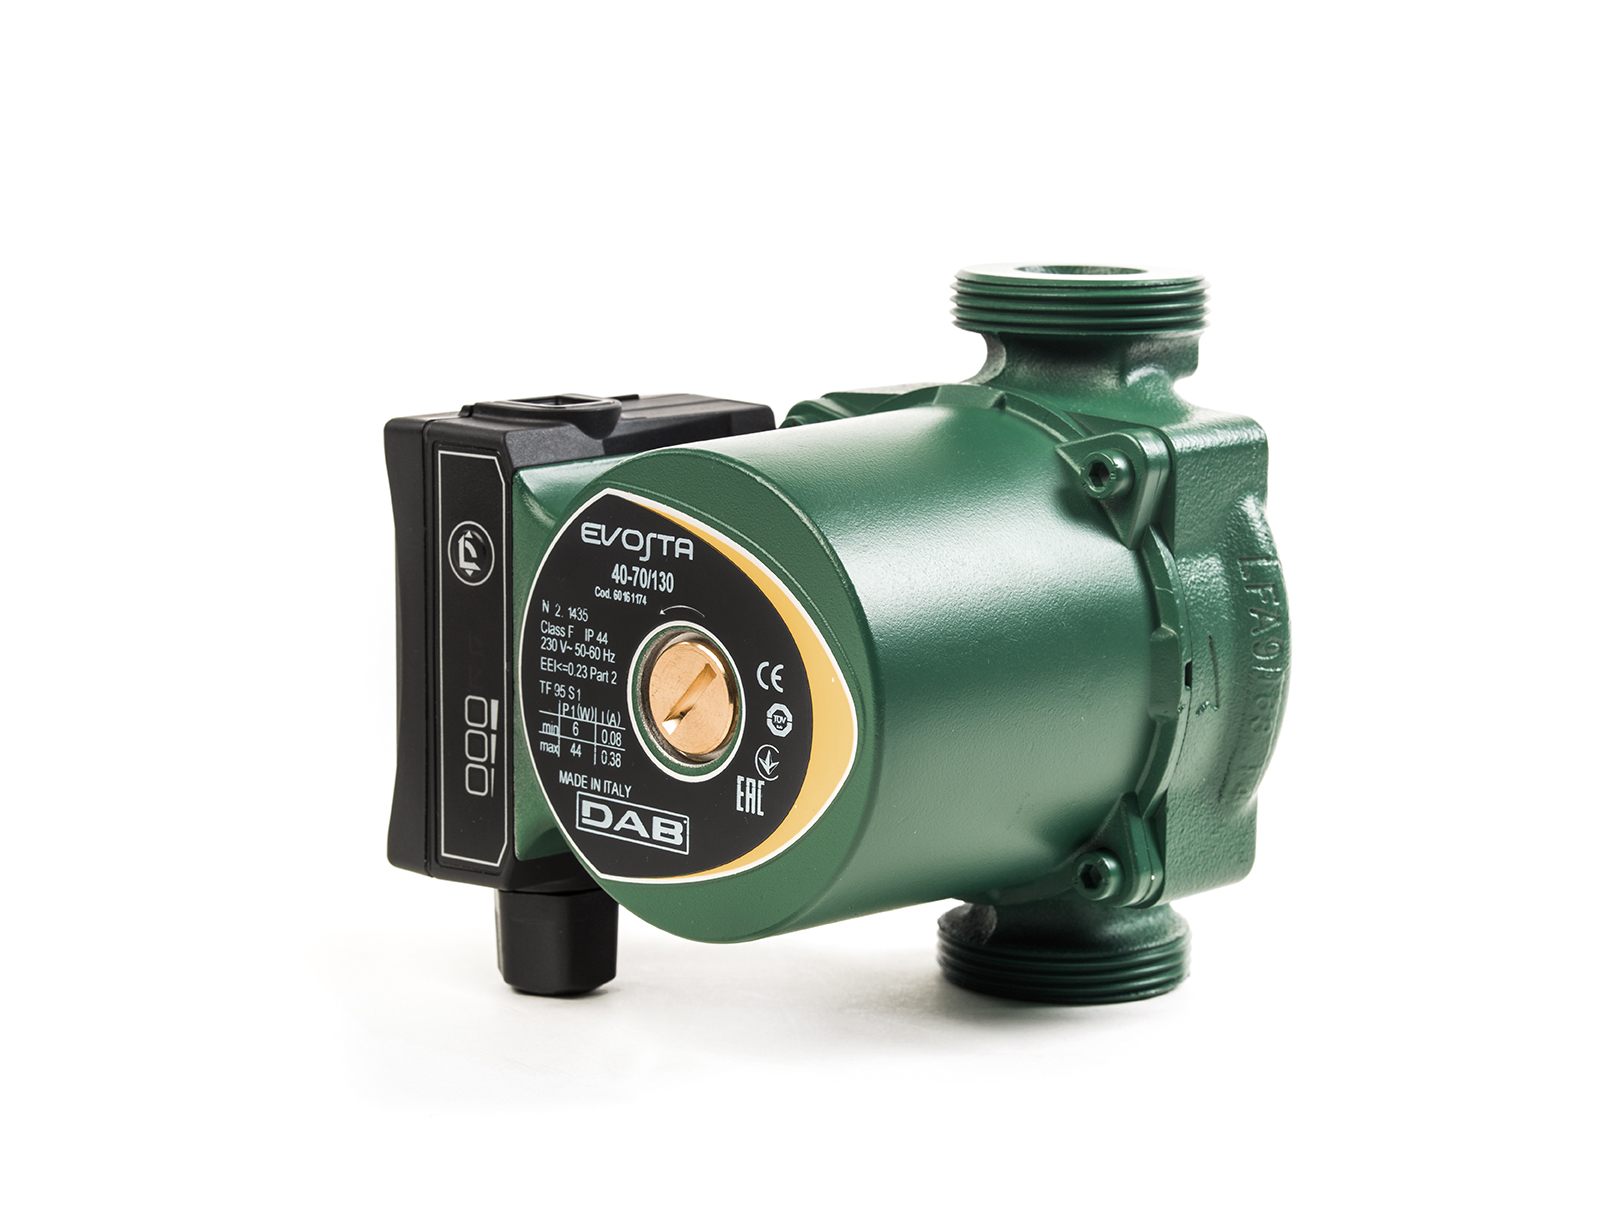 DAB Evosta 3 8 meter head 130mm Central Heating Circulating Pump